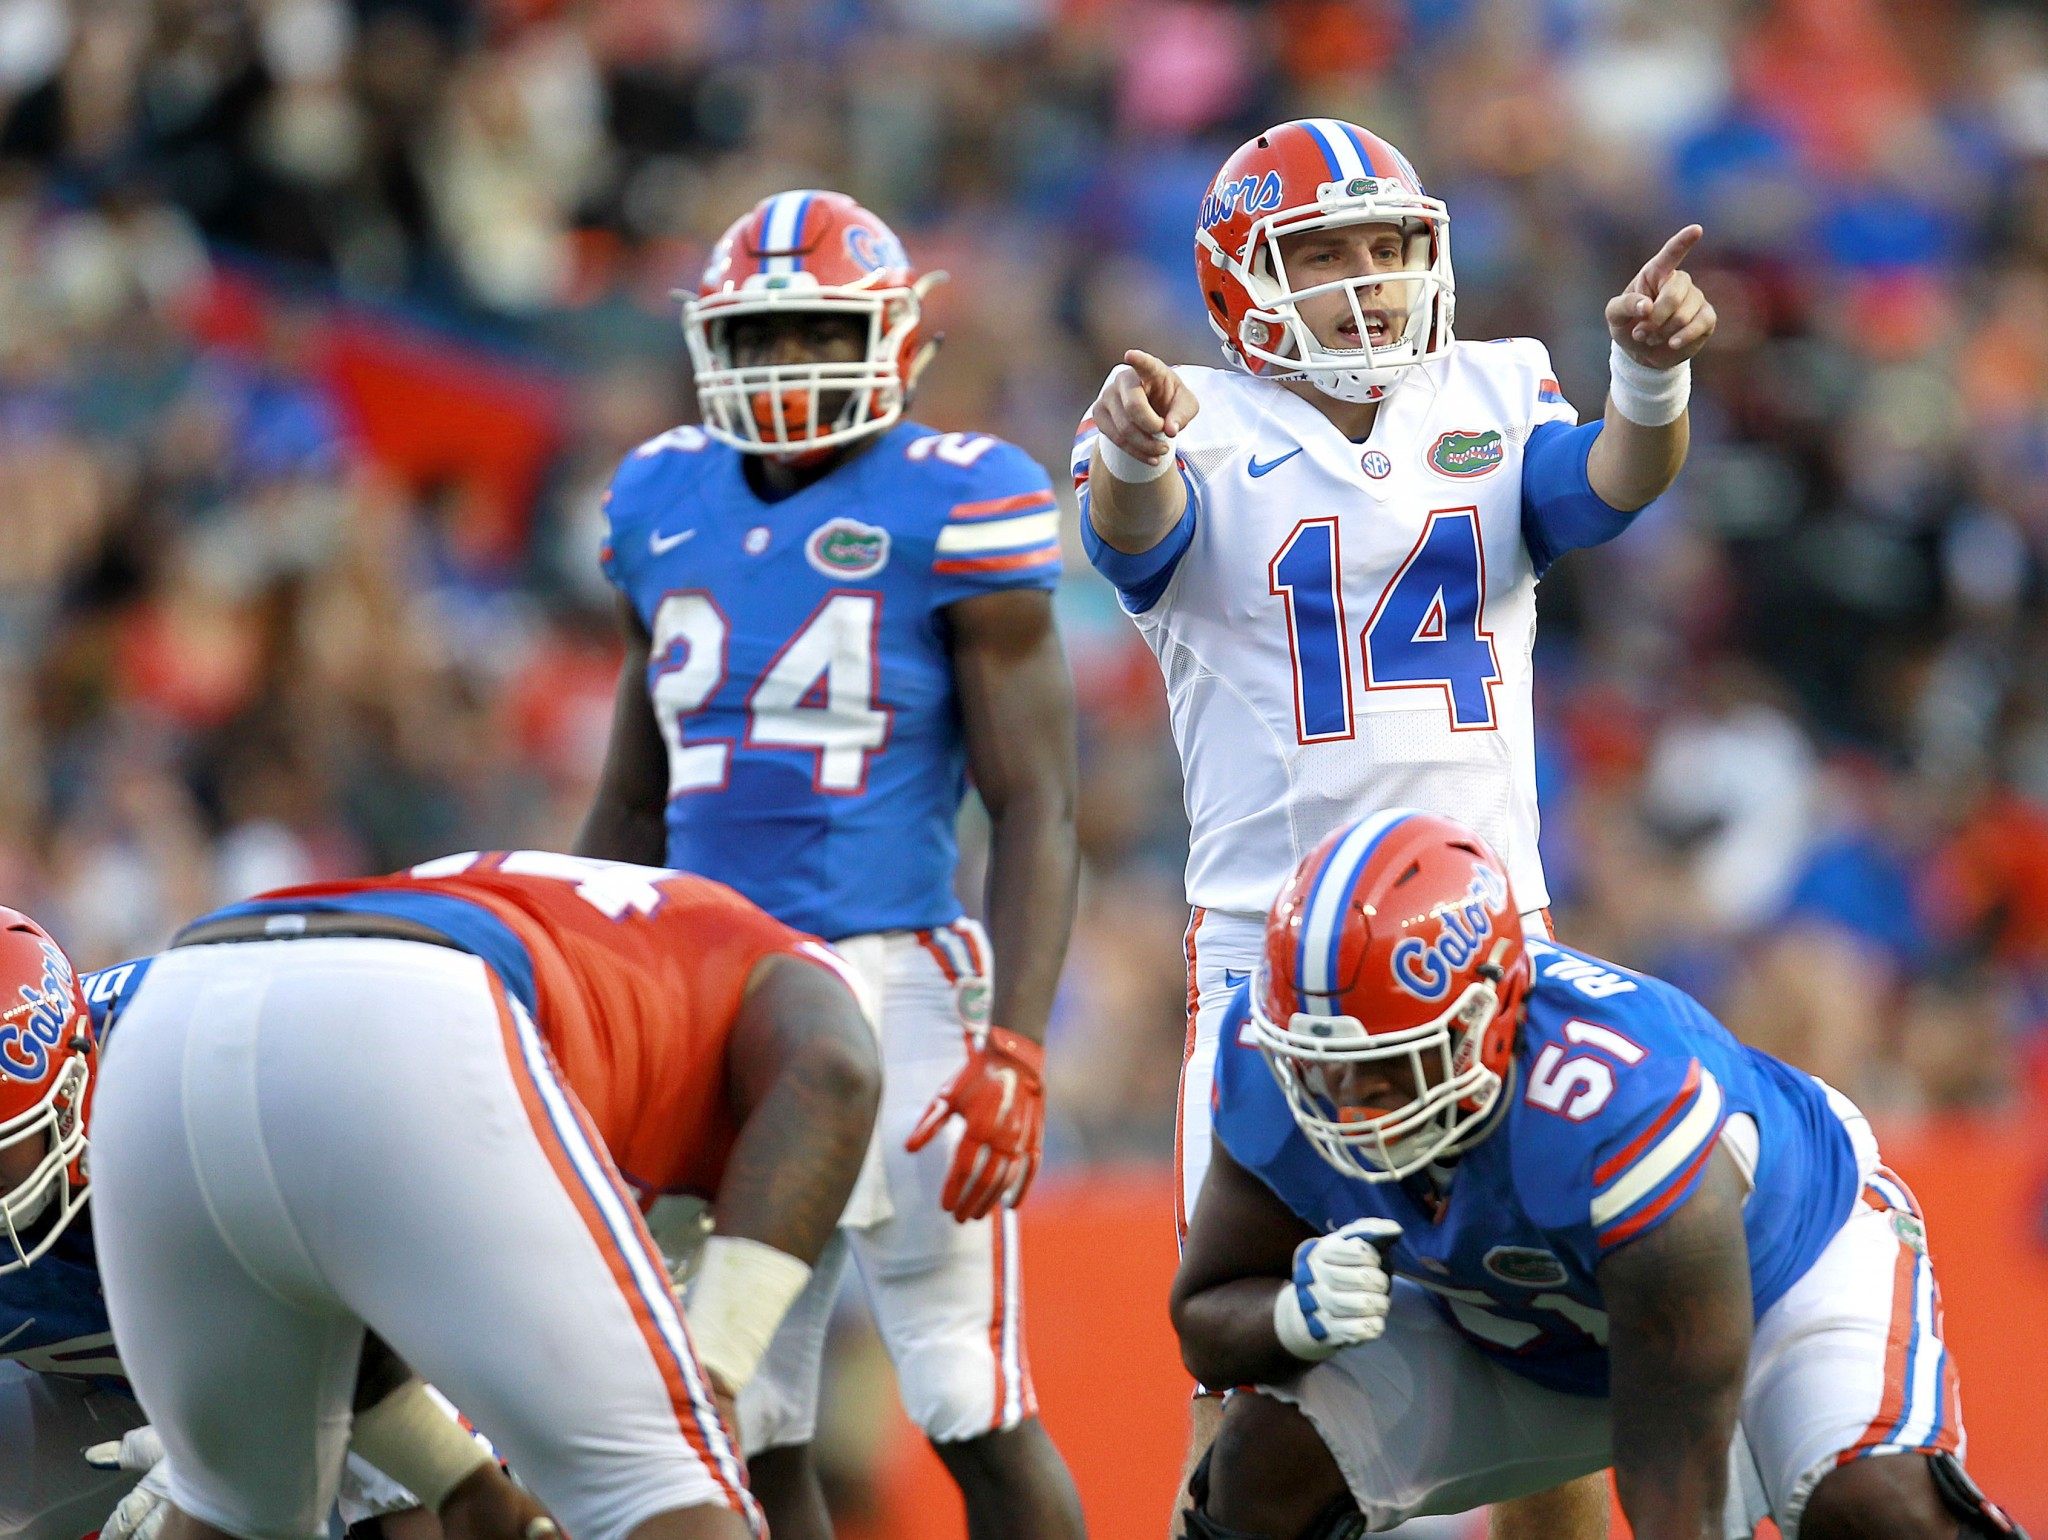 New Florida starting quarterback Luke Del Rio. (Matt Stamey/The Gainesville Sun via AP, File)